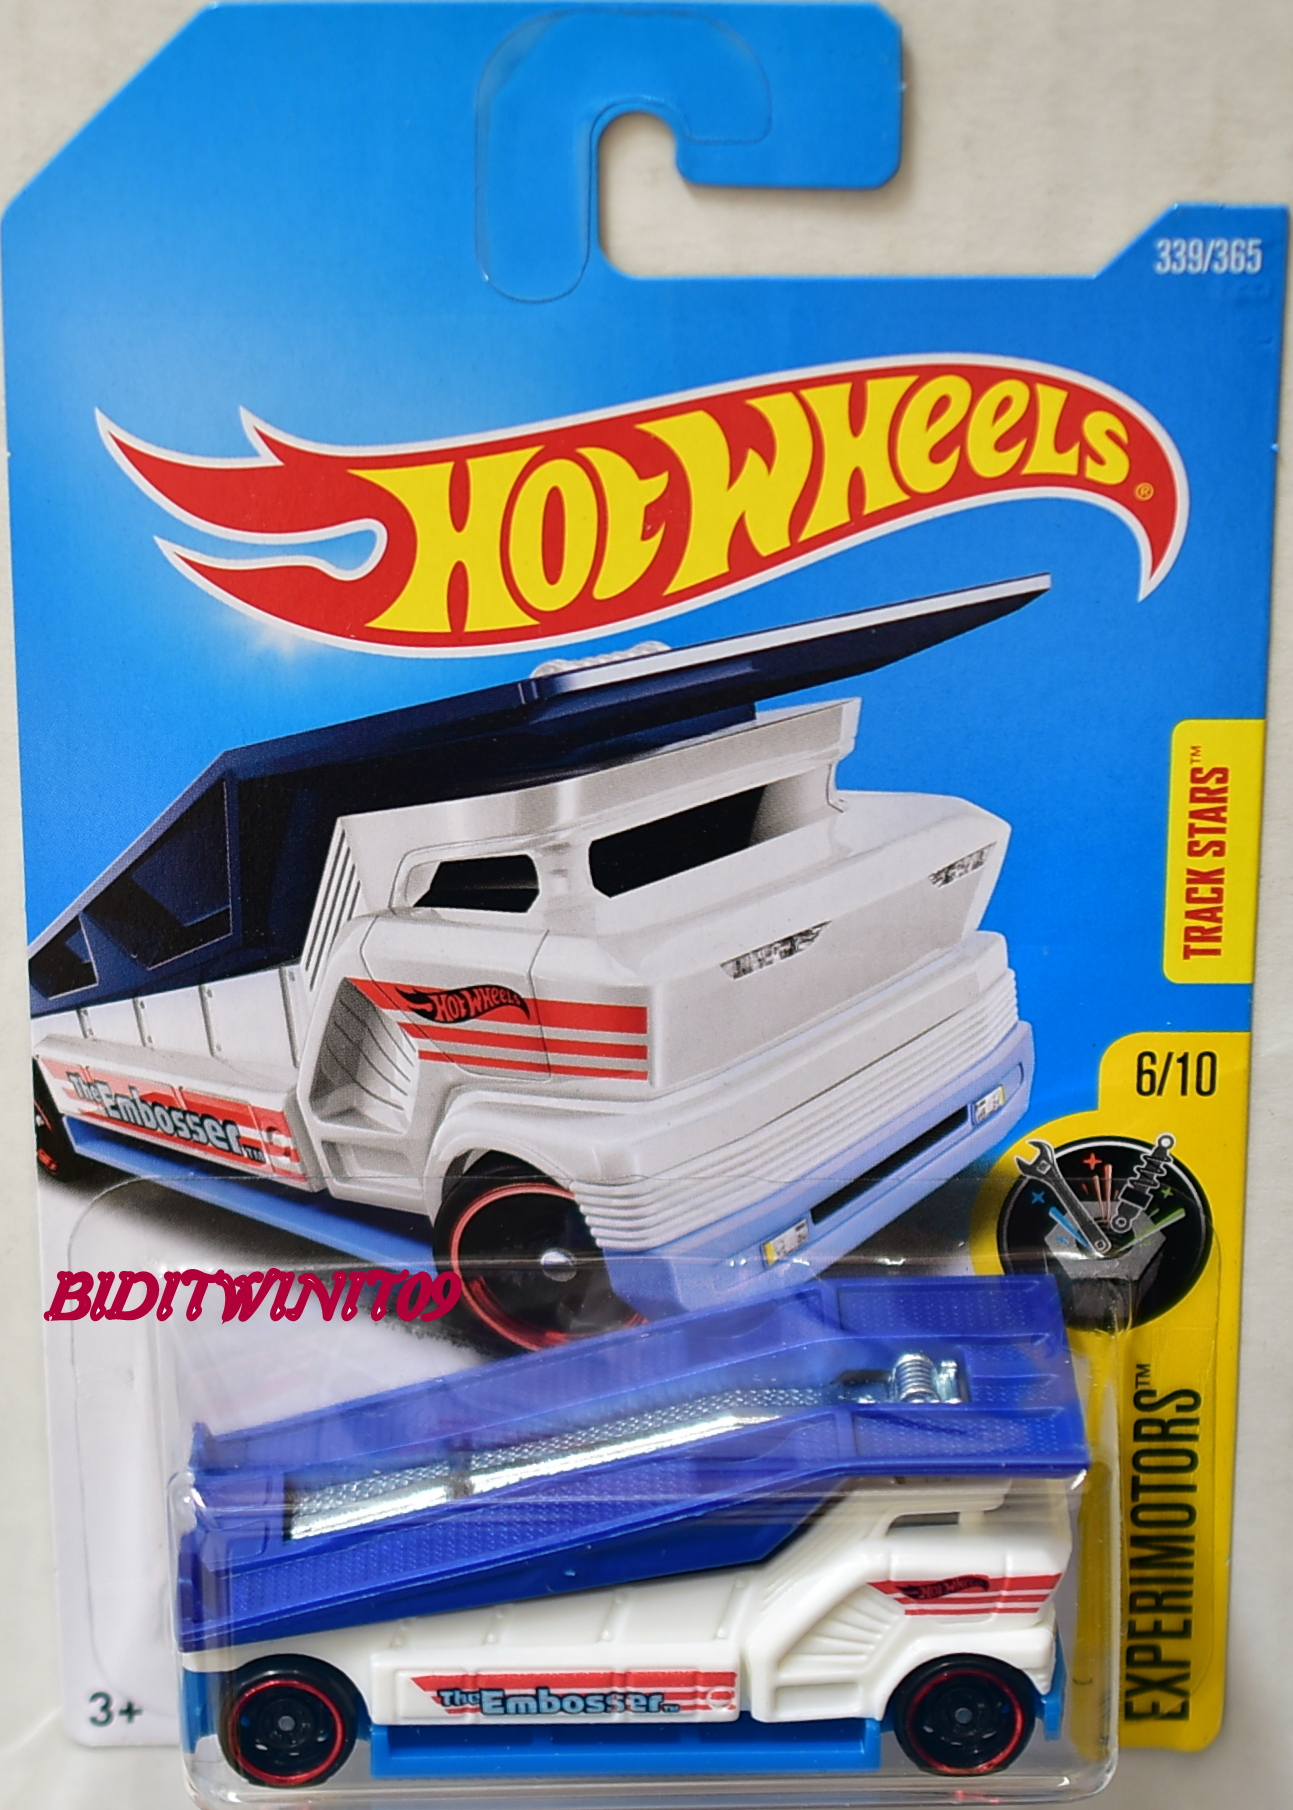 Hot Wheels 2017 Experimotors The Embosser White 0003525 2 74 Biditwinit09 Com Classic